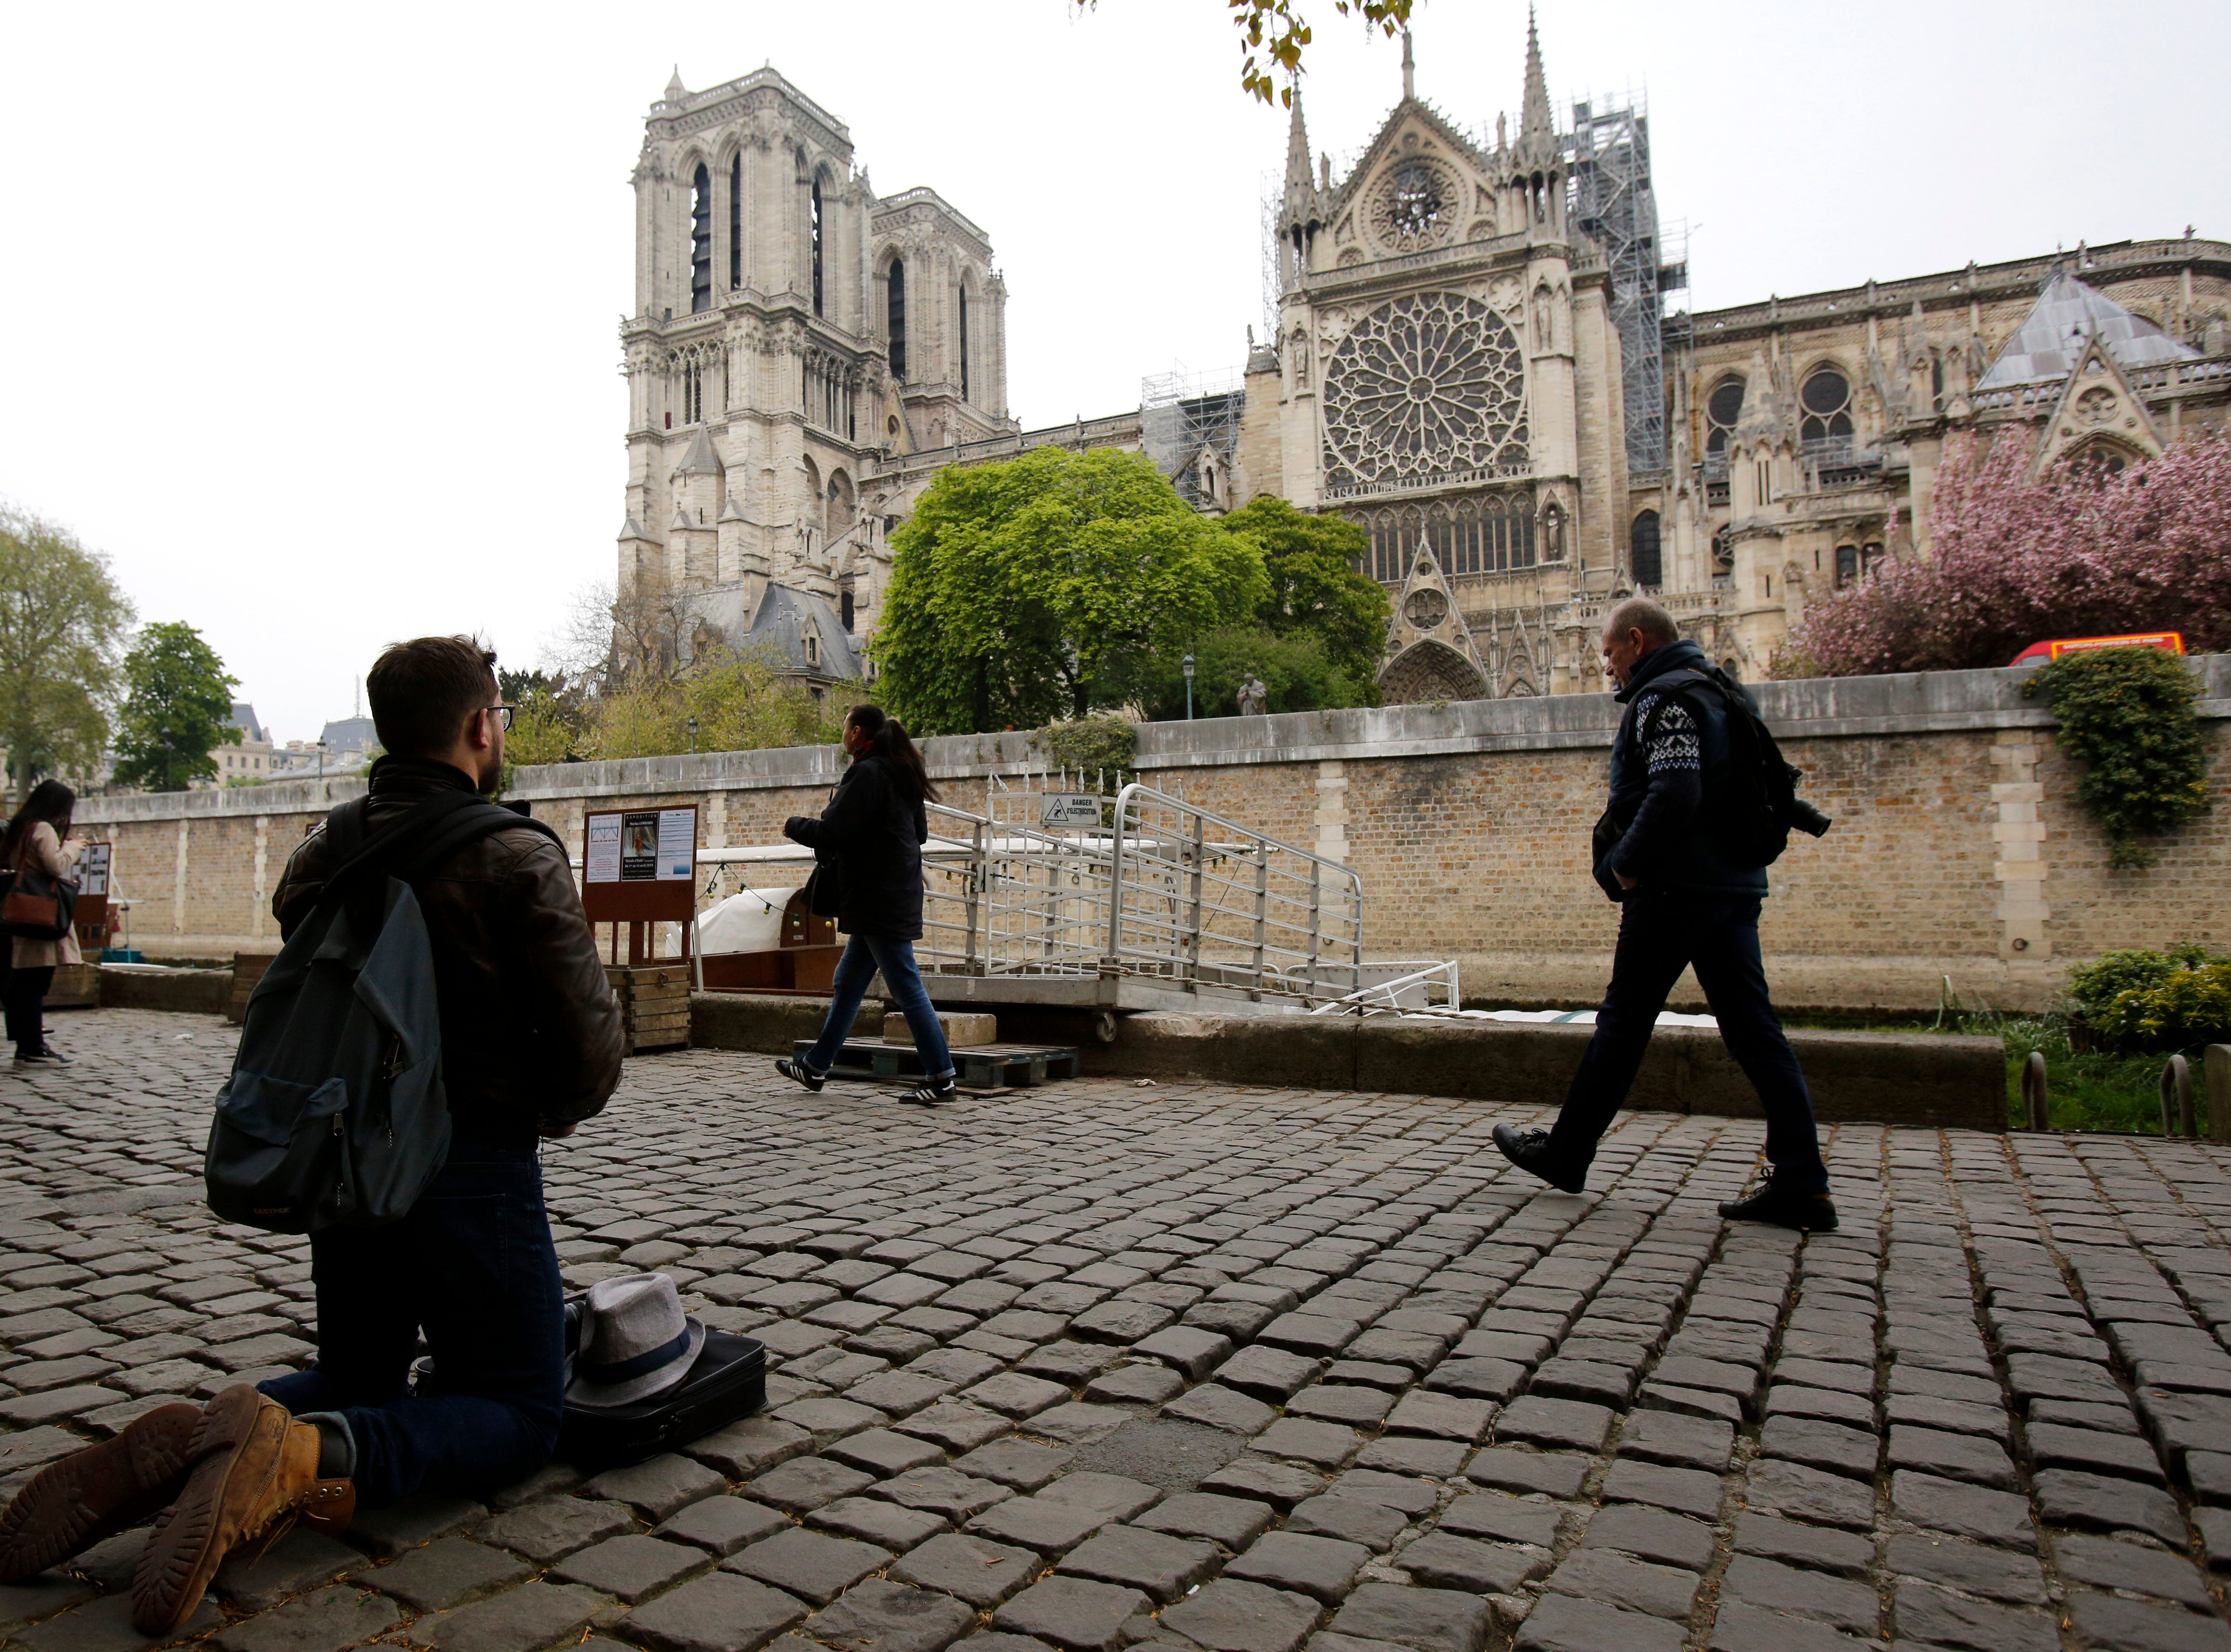 Man kneels as people came to watch and photograph the Notre Dame cathedral after the fire in Paris, Tuesday, April 16, 2019. Experts are assessing the blackened shell of Paris' iconic Notre Dame cathedral to establish next steps to save what remains after a devastating fire destroyed much of the almost 900-year-old building. With the fire that broke out Monday evening and quickly consumed the cathedral now under control, attention is turning to ensuring the structural integrity of the remaining building. (AP Photo/Christophe Ena)